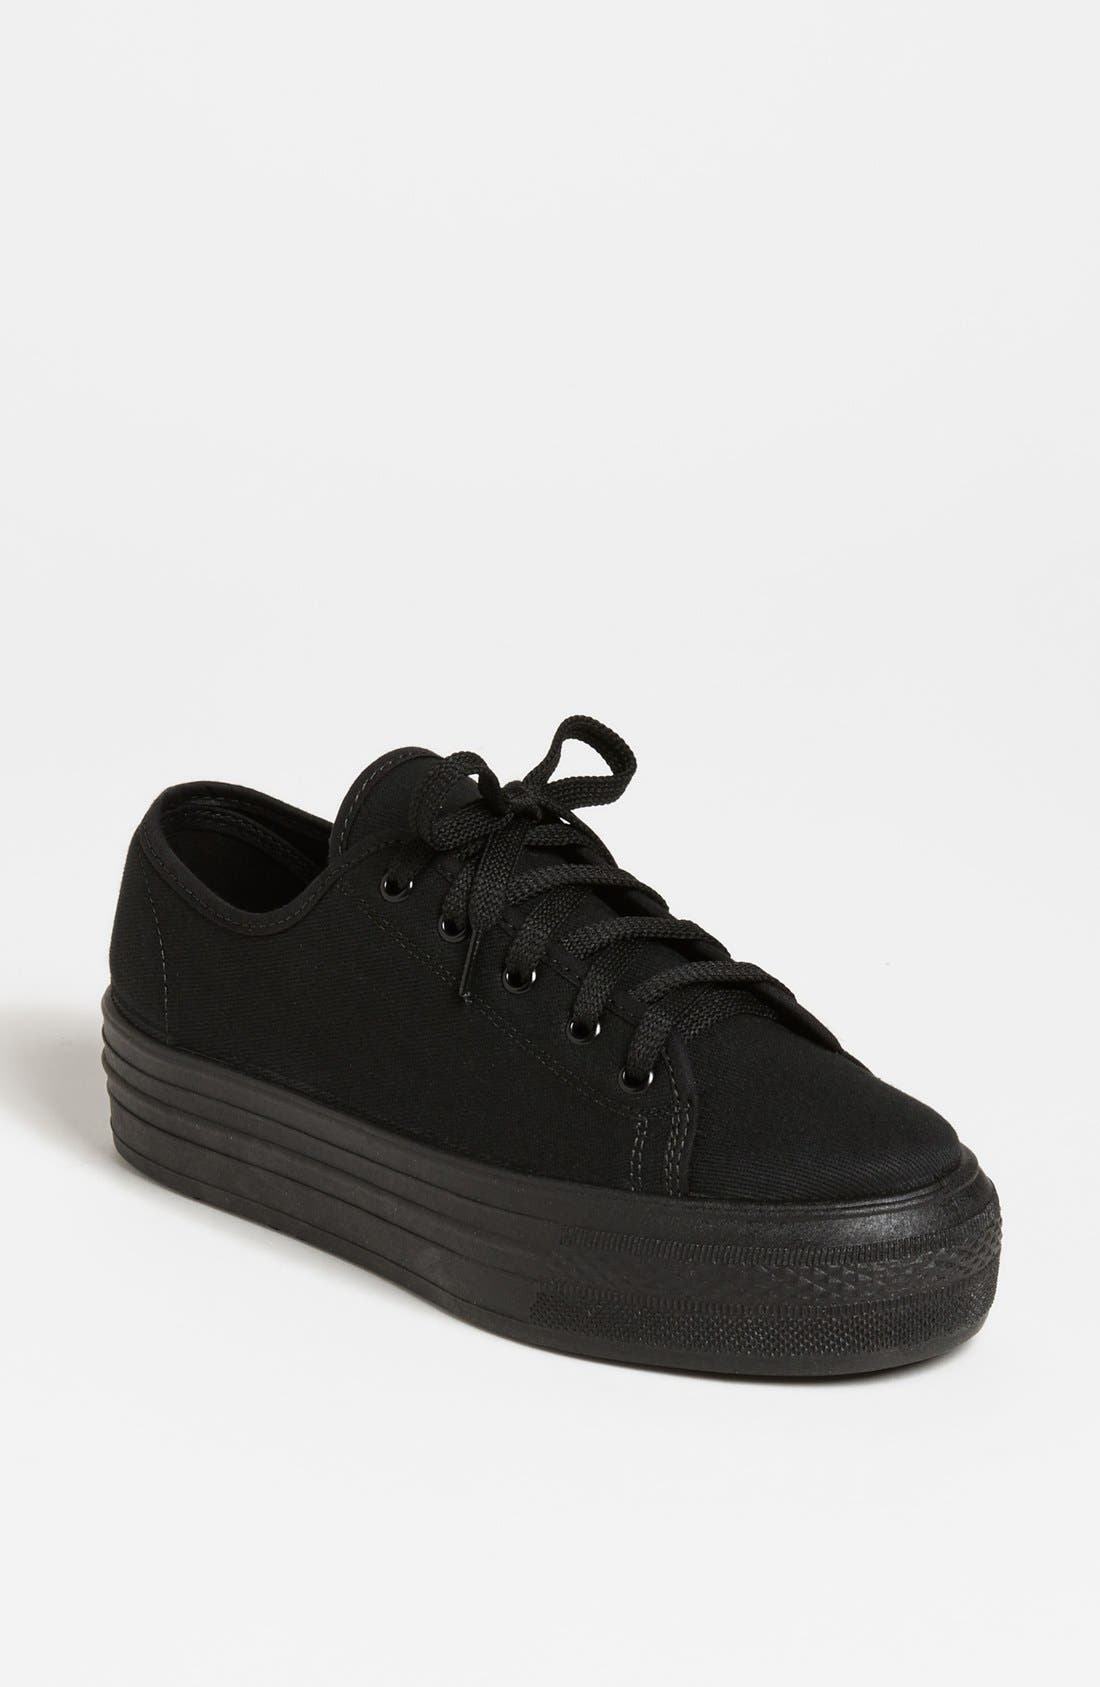 Alternate Image 1 Selected - Topshop 'Heavy' Sneaker